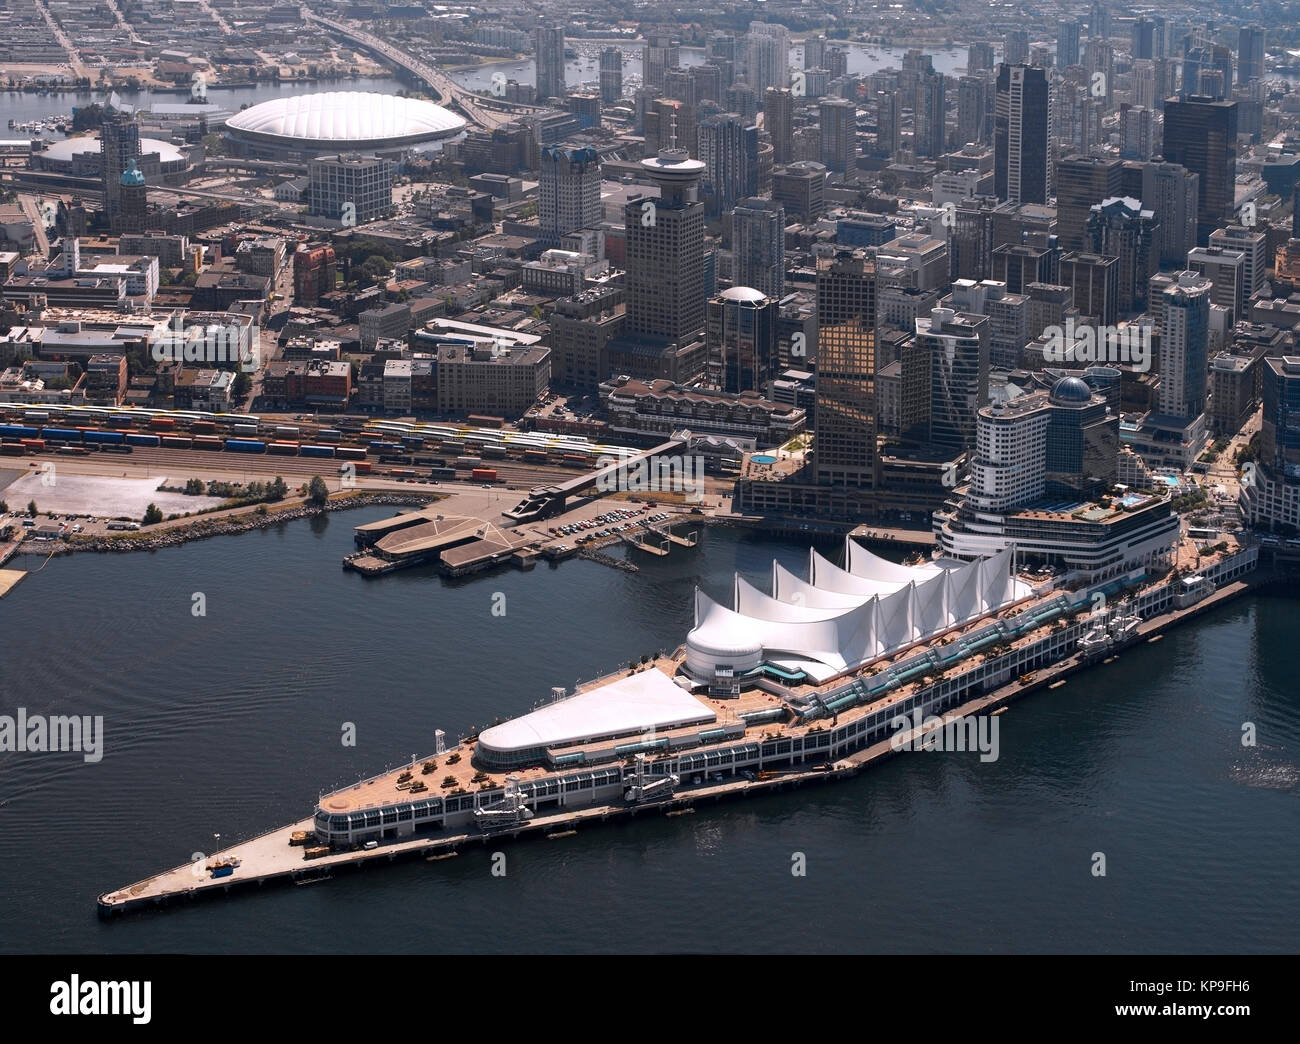 Aerial view of the City of Vancouver in British Columbia in western Canada showing the downtown waterfront with - Stock Image